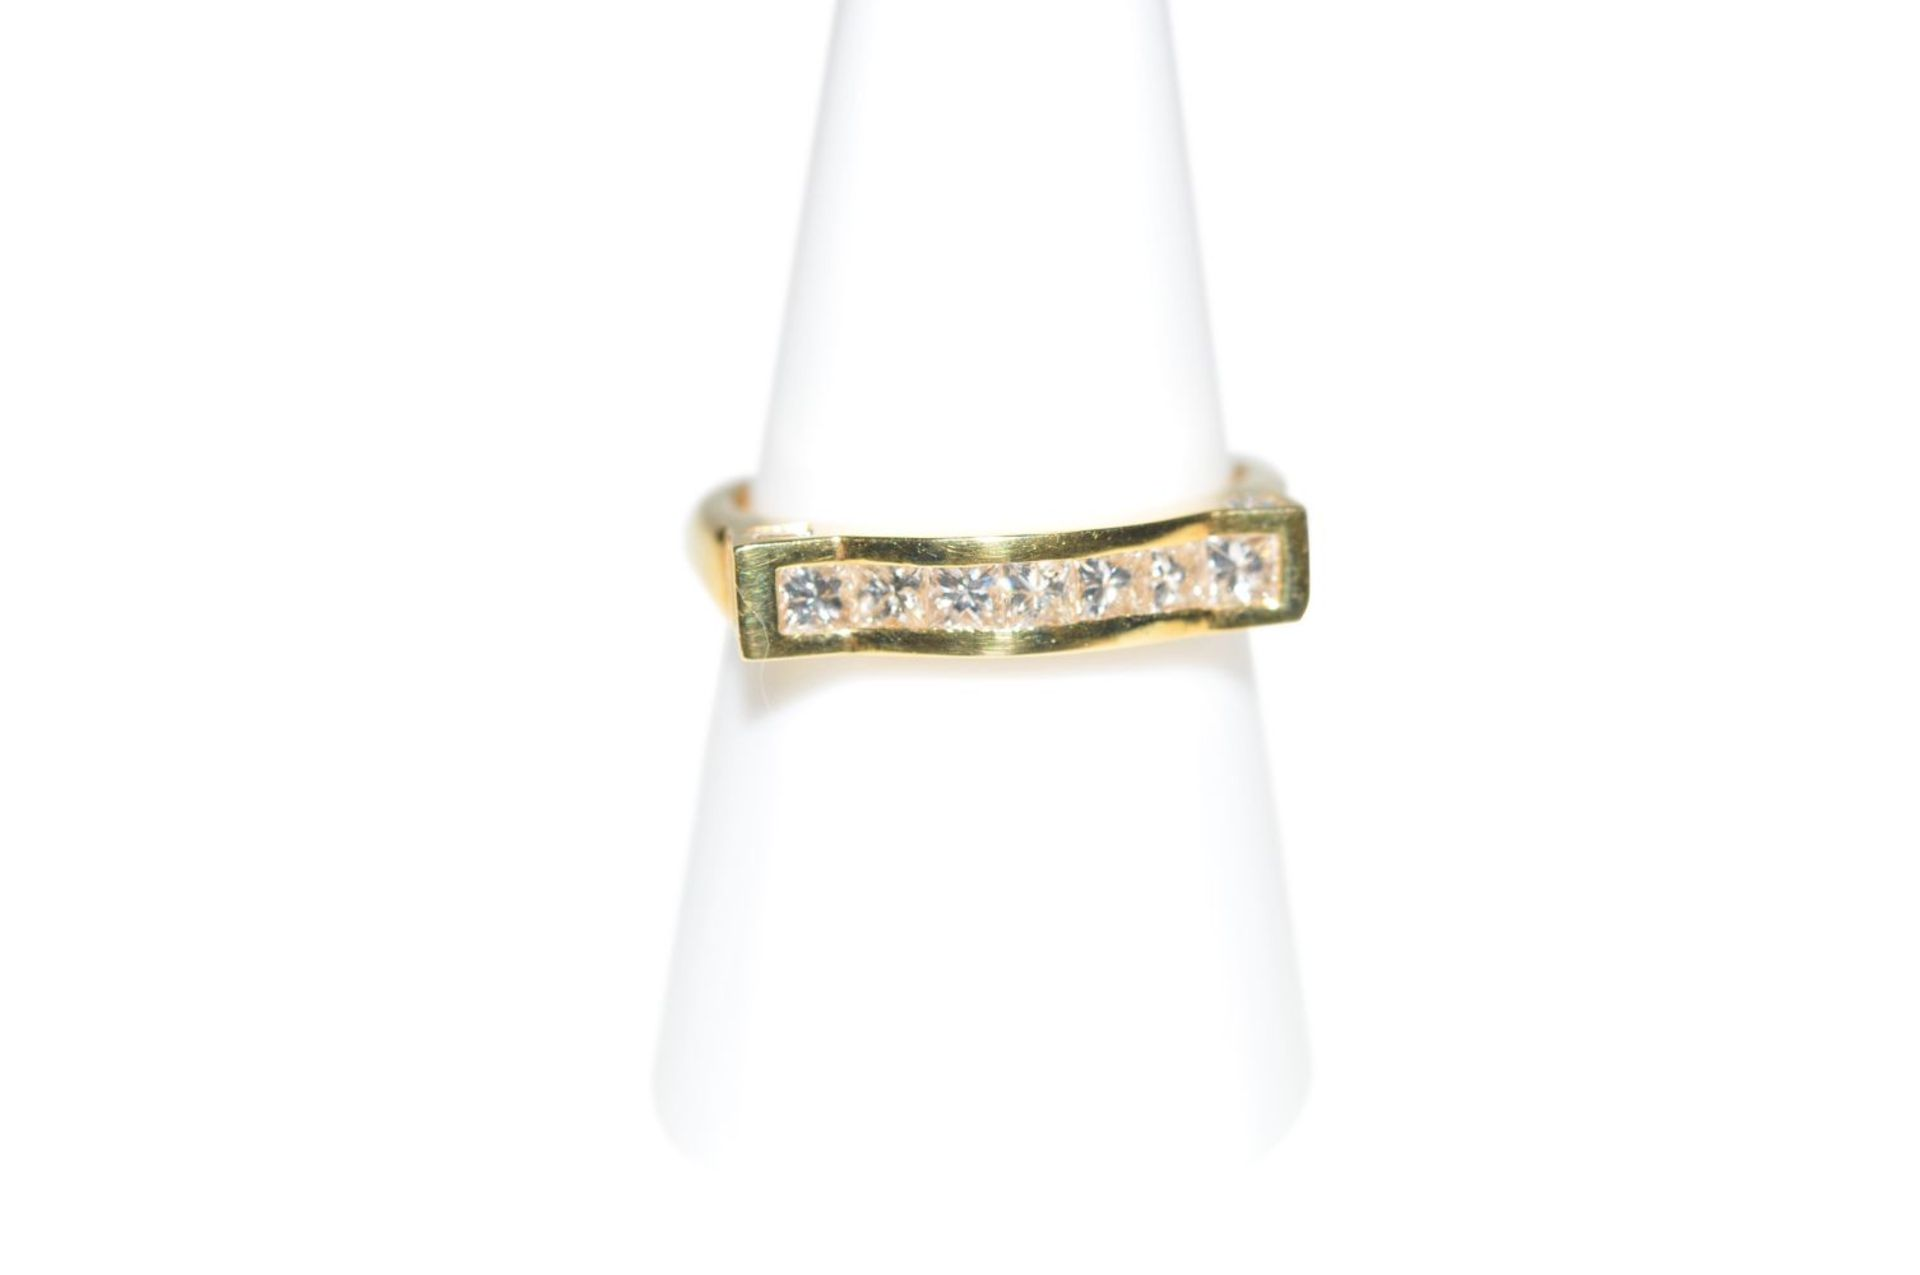 Los 91 - Diamond ring18Kt gold ring with Carree cut diamonds total carat weight approx. 0.97ct, total